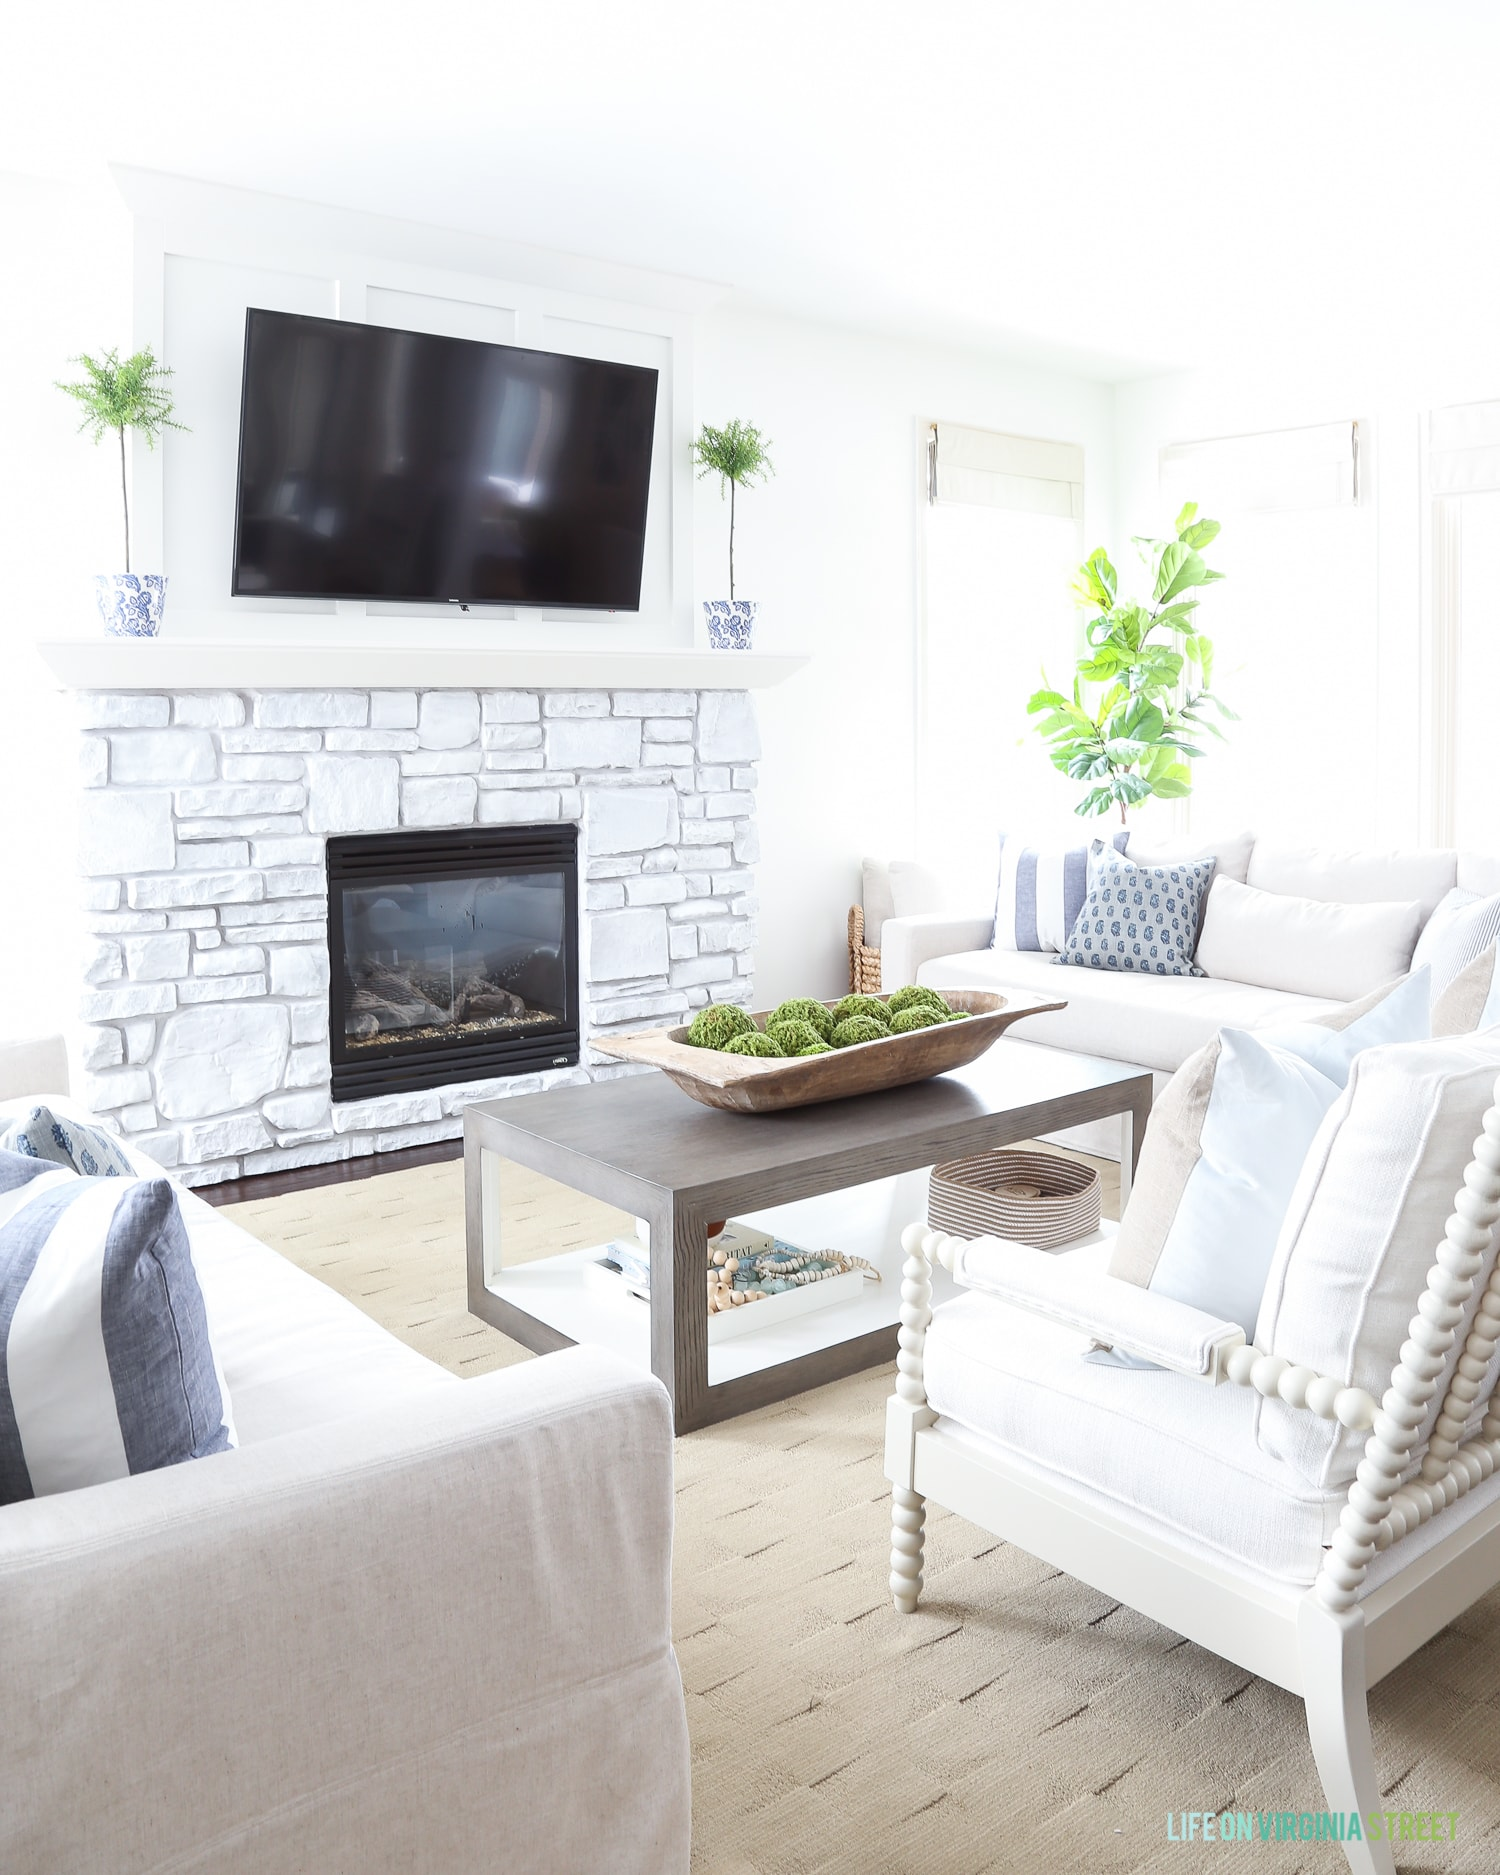 5 Simple Ways to Decorate for Spring - Life On Virginia Street